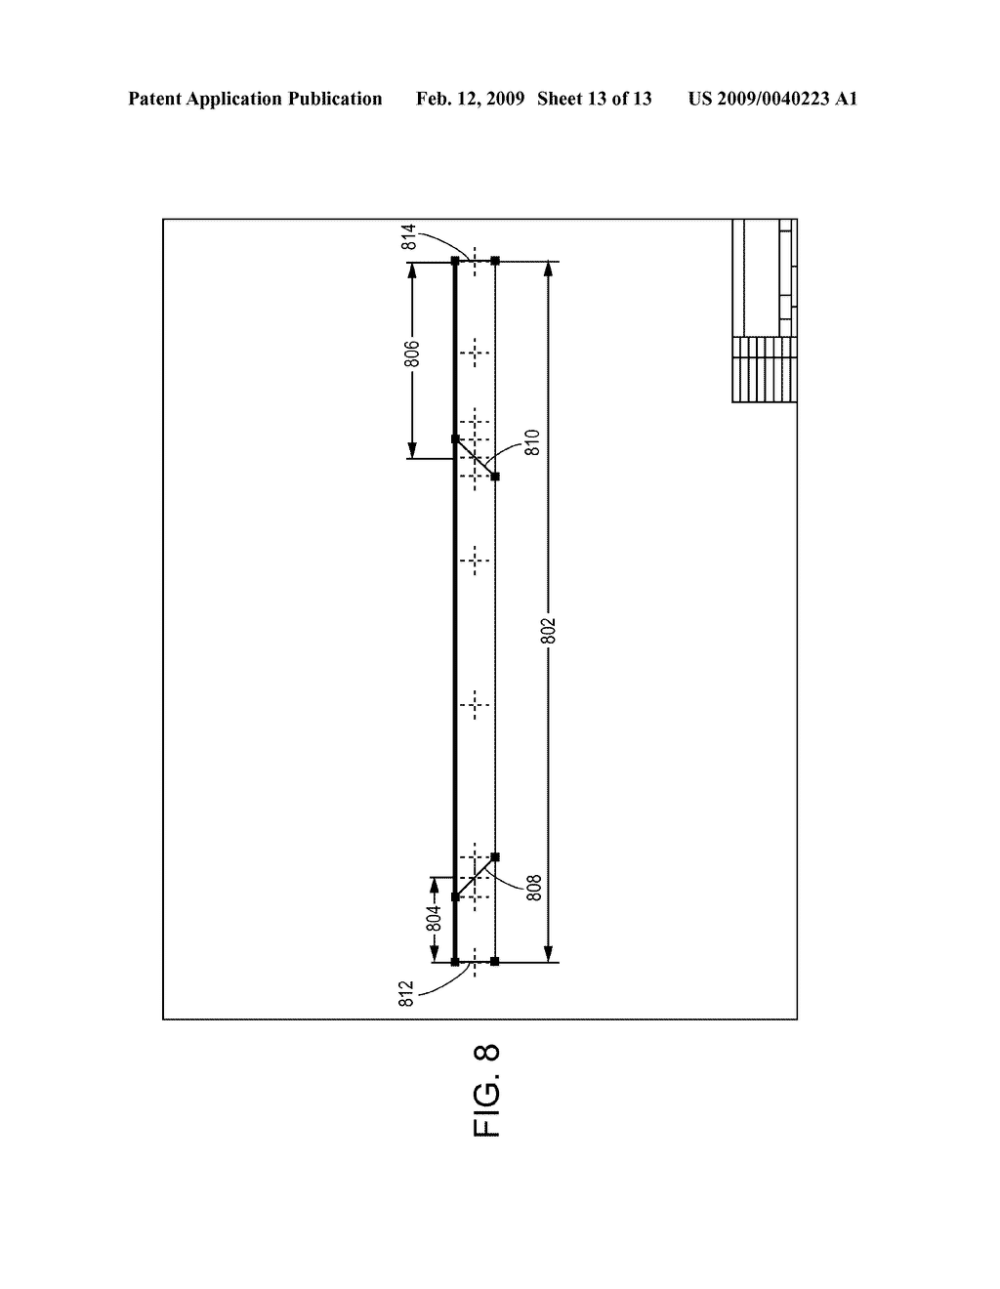 medium resolution of method for generating three dimensional ribbon cable objects in computer aided design drawings diagram schematic and image 14